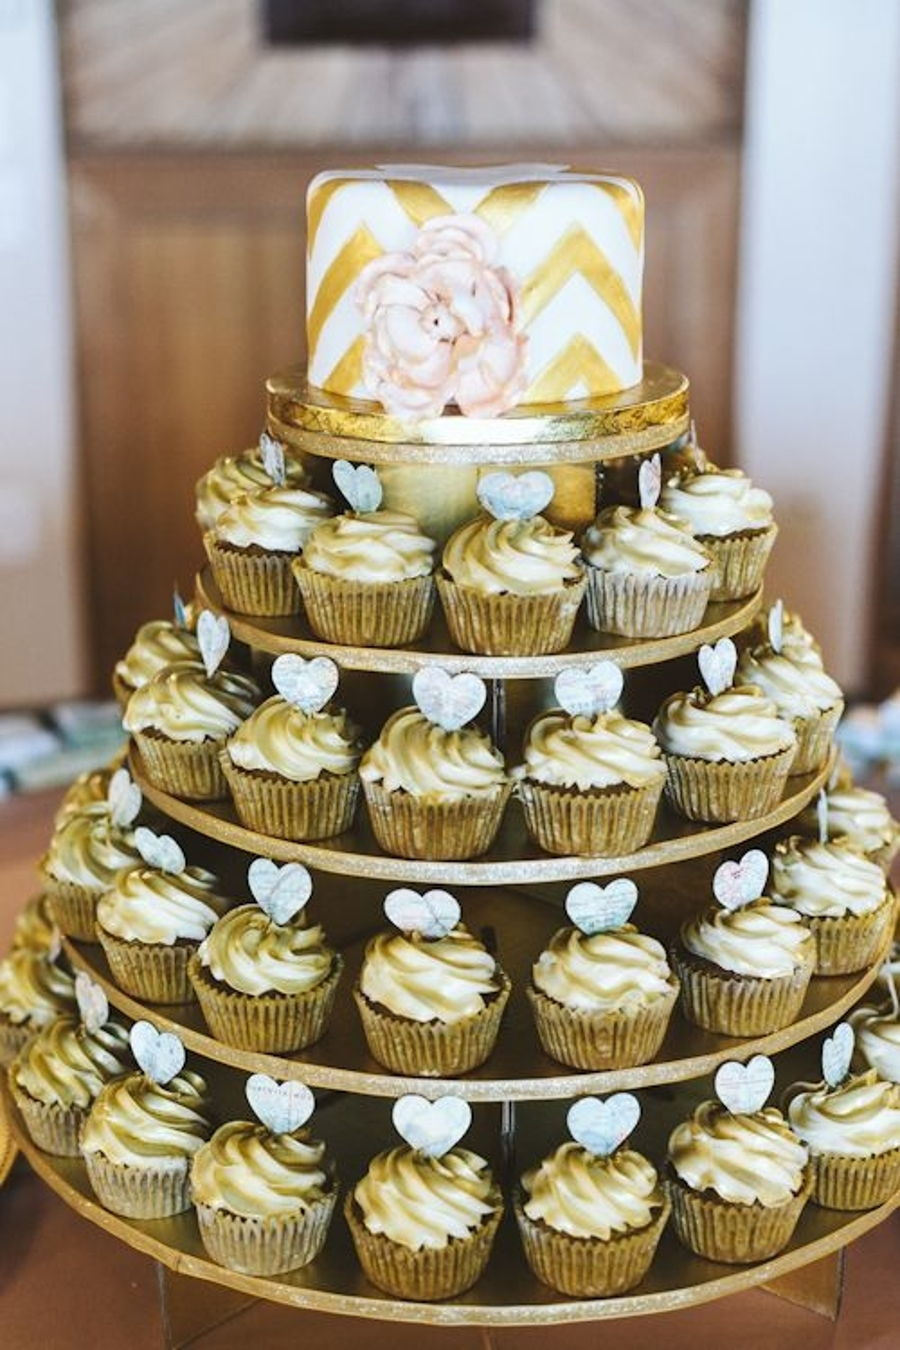 cupcake wedding cakes nashville tn how much luster dust for 150 cupcakes cakecentral 13179